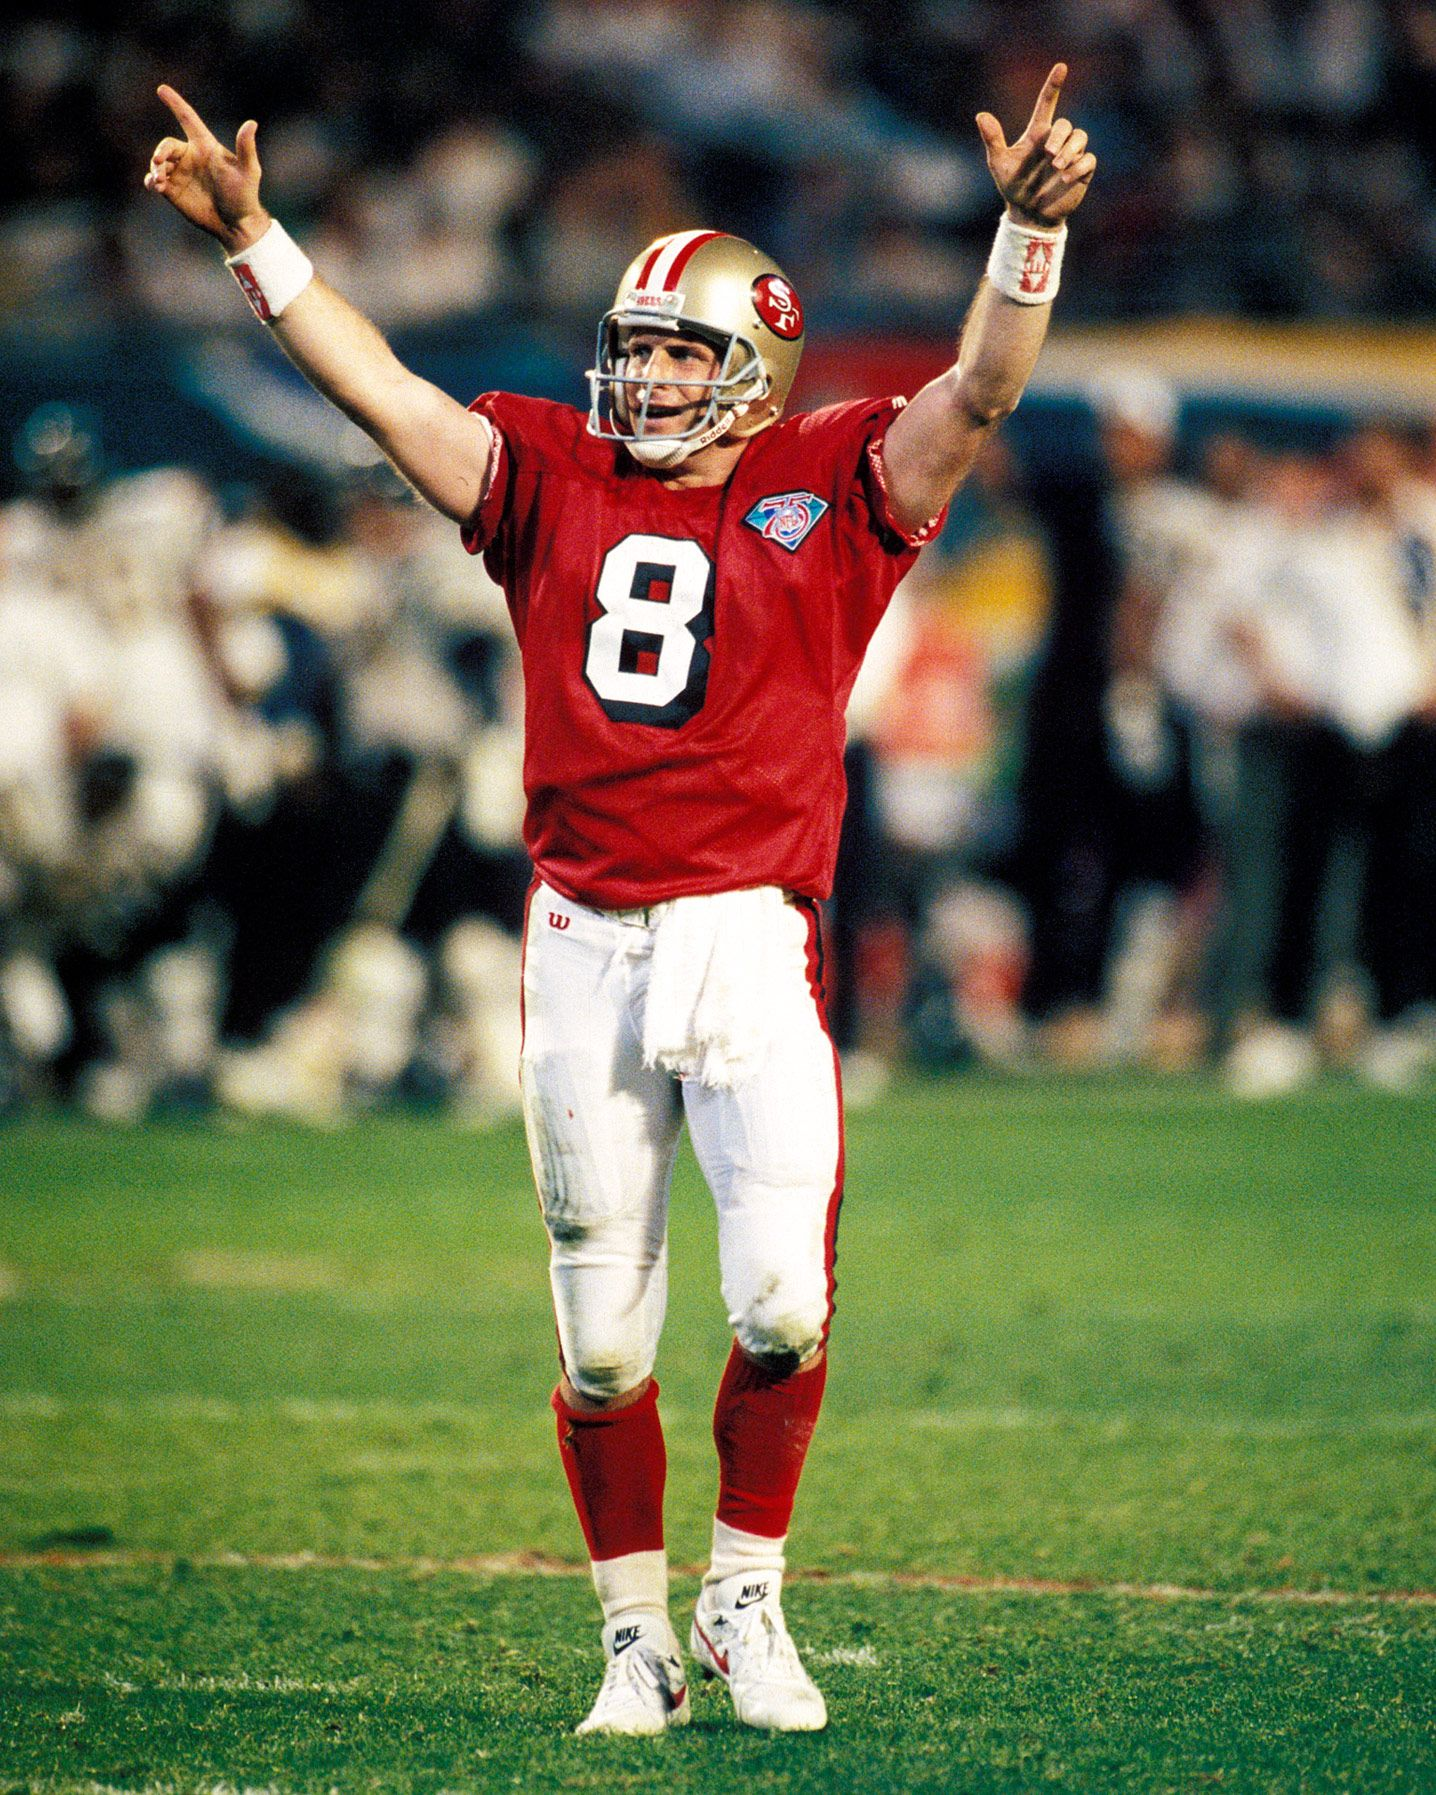 Steve Young San Francisco 49ers Nfl 49ers Byu Football Nfl